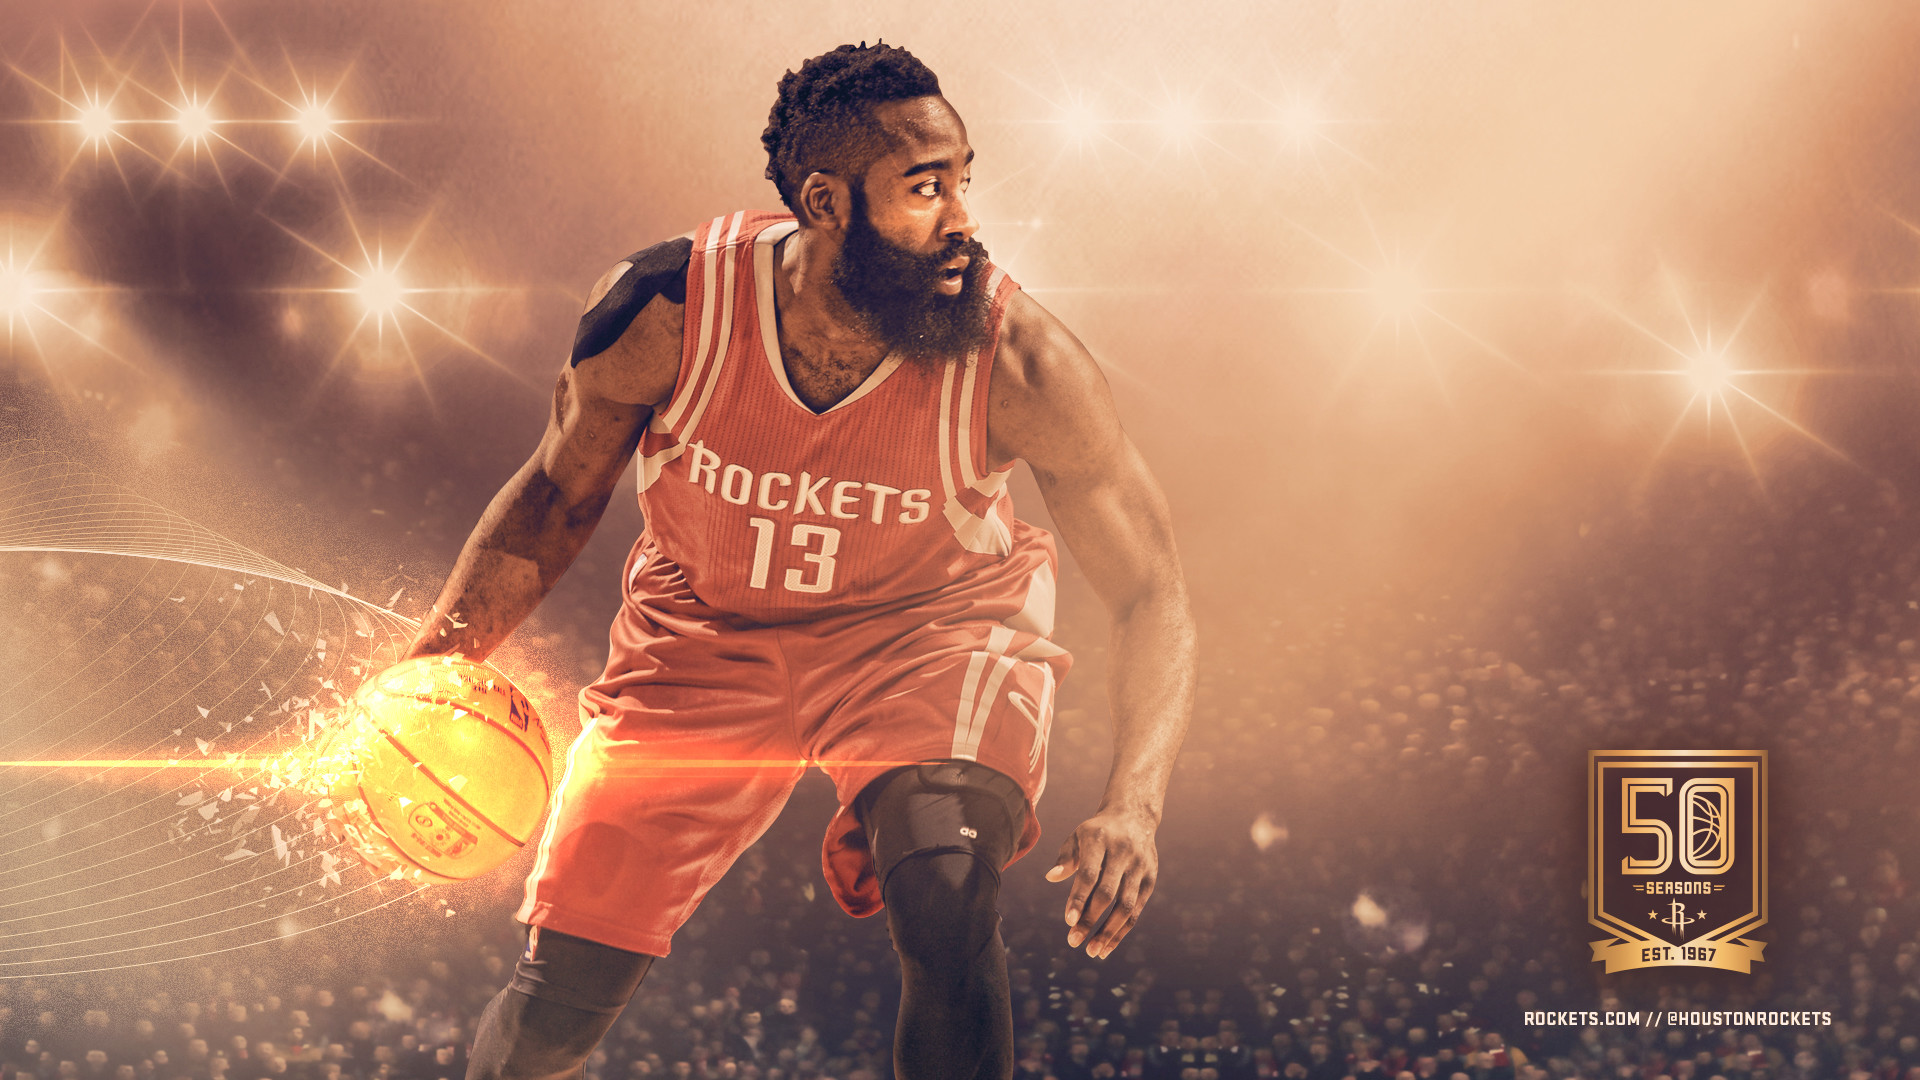 NBA Wallpapers 2018 HD (69+ Images